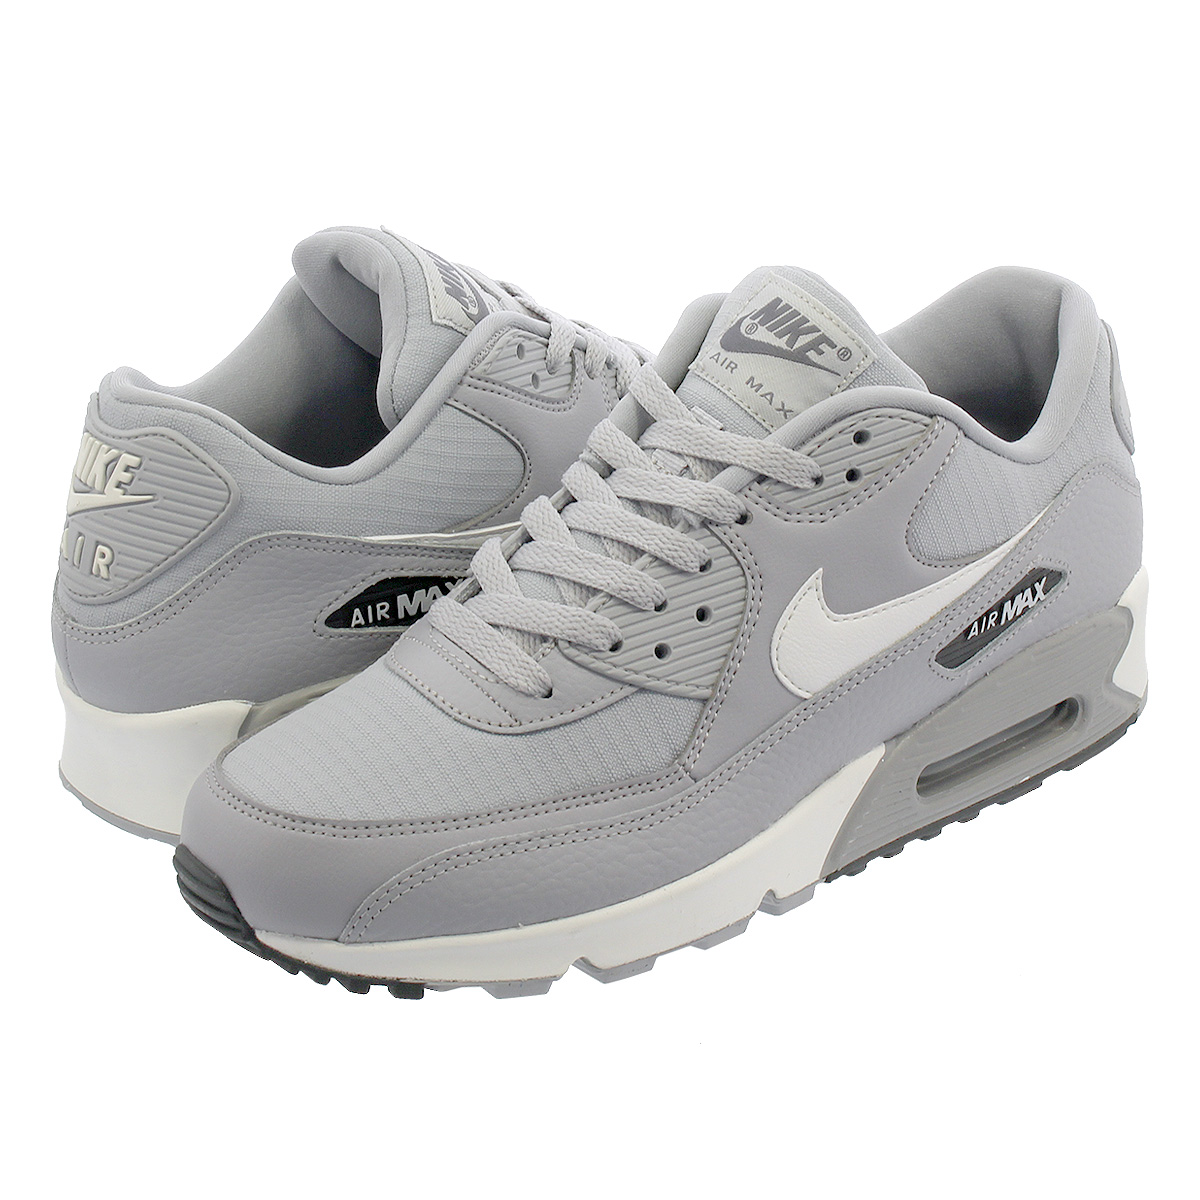 for whole family check out pick up NIKE WMNS AIR MAX 90 Nike women Air Max 90 WOLF GREY/SUMMIT WHITE/DARK GREY  325,213-062